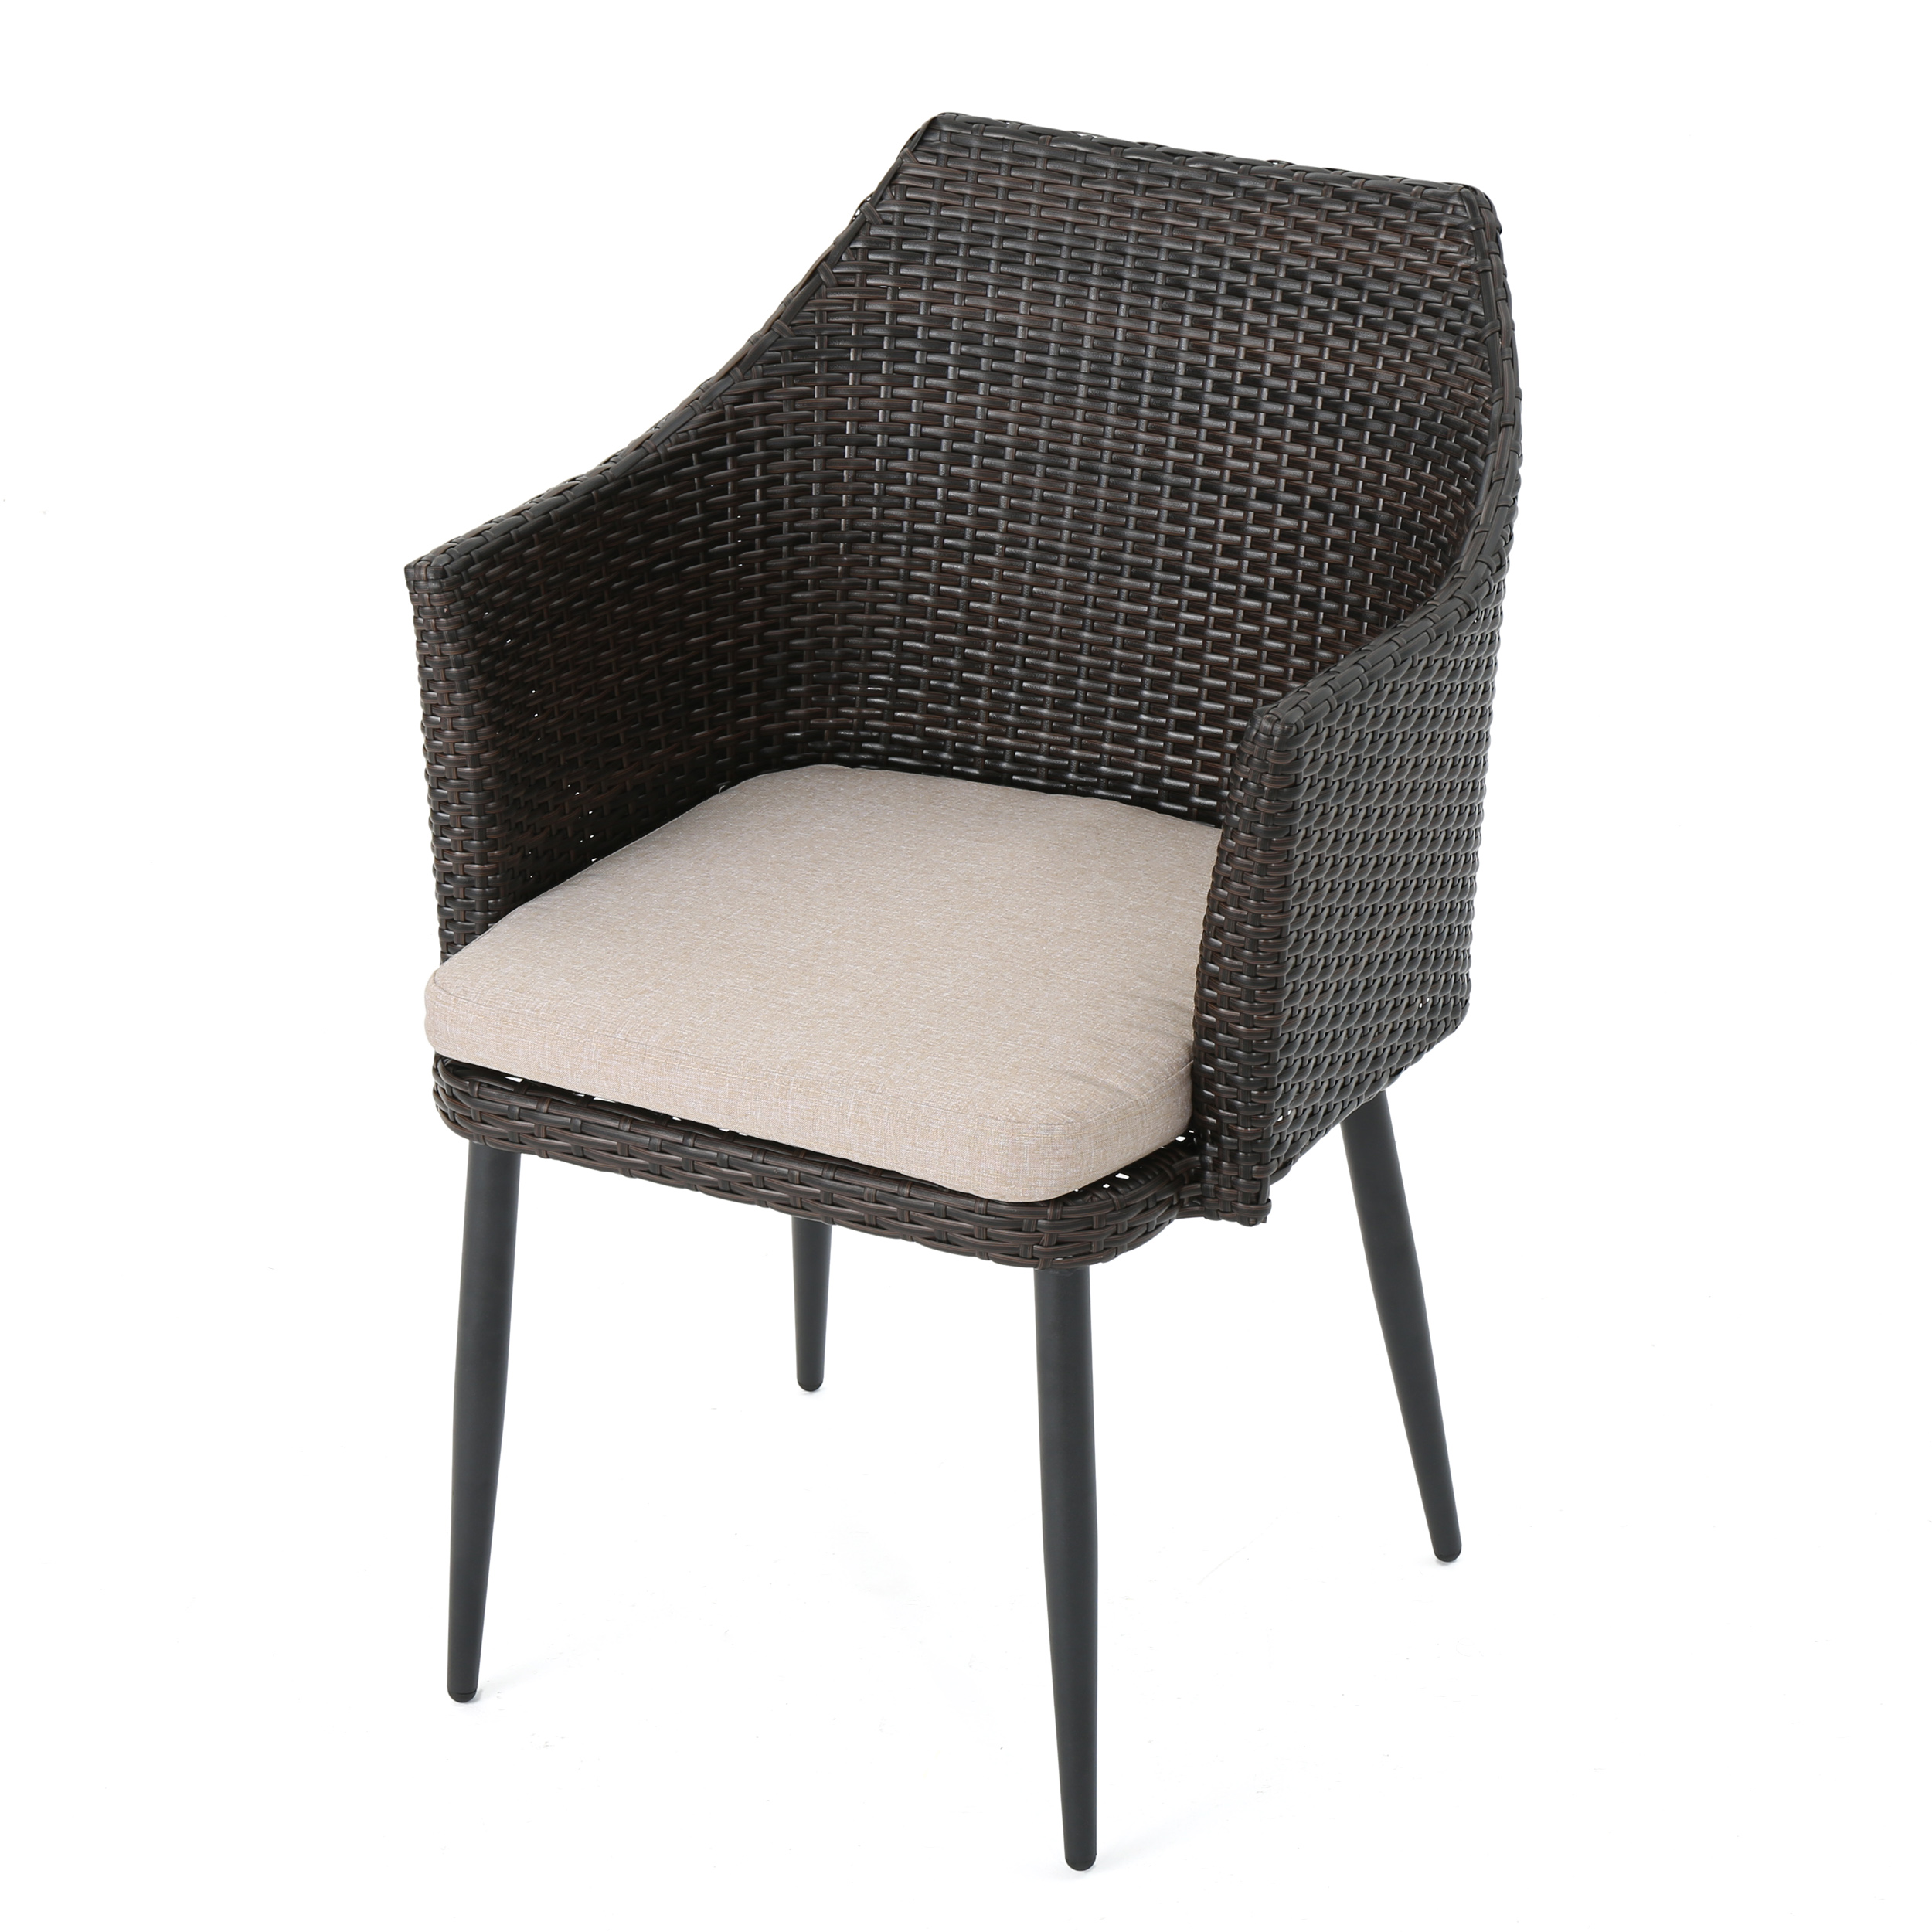 Ibiza-Outdoor-Wicker-Dining-Chairs-with-Water-Resistant-Cushion-Set-of-2 thumbnail 10